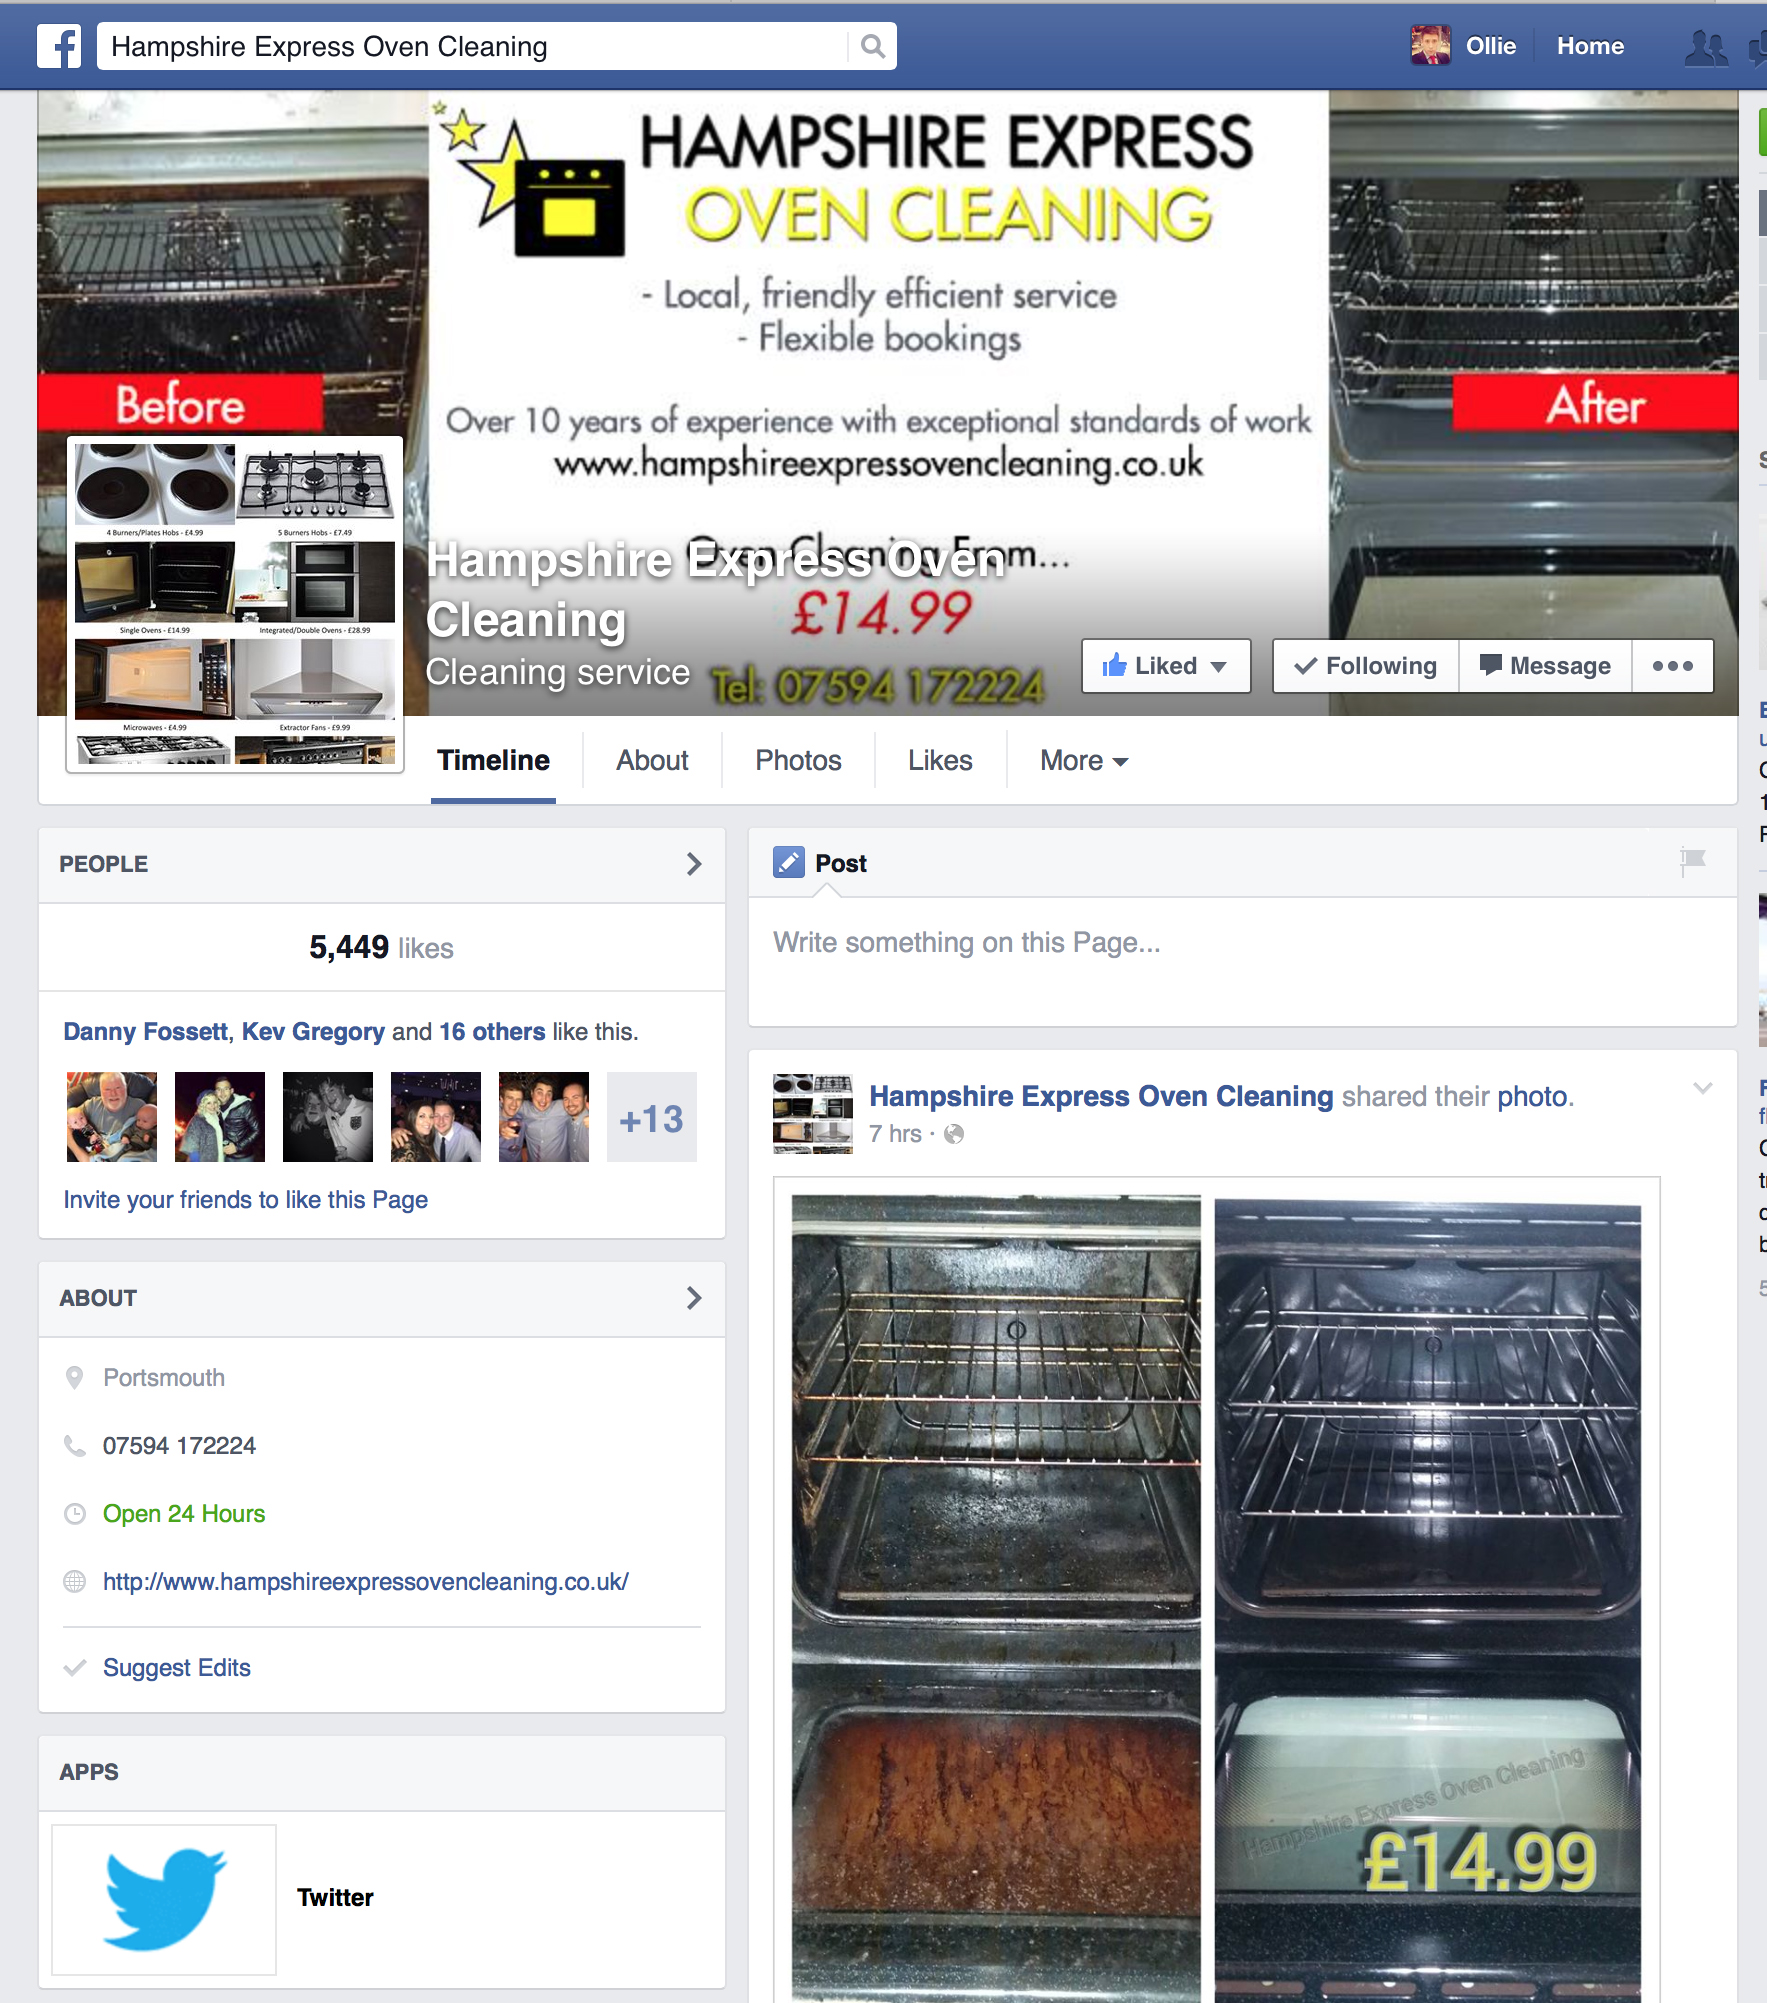 hampshire-express-oven-cleaning-facebook-page